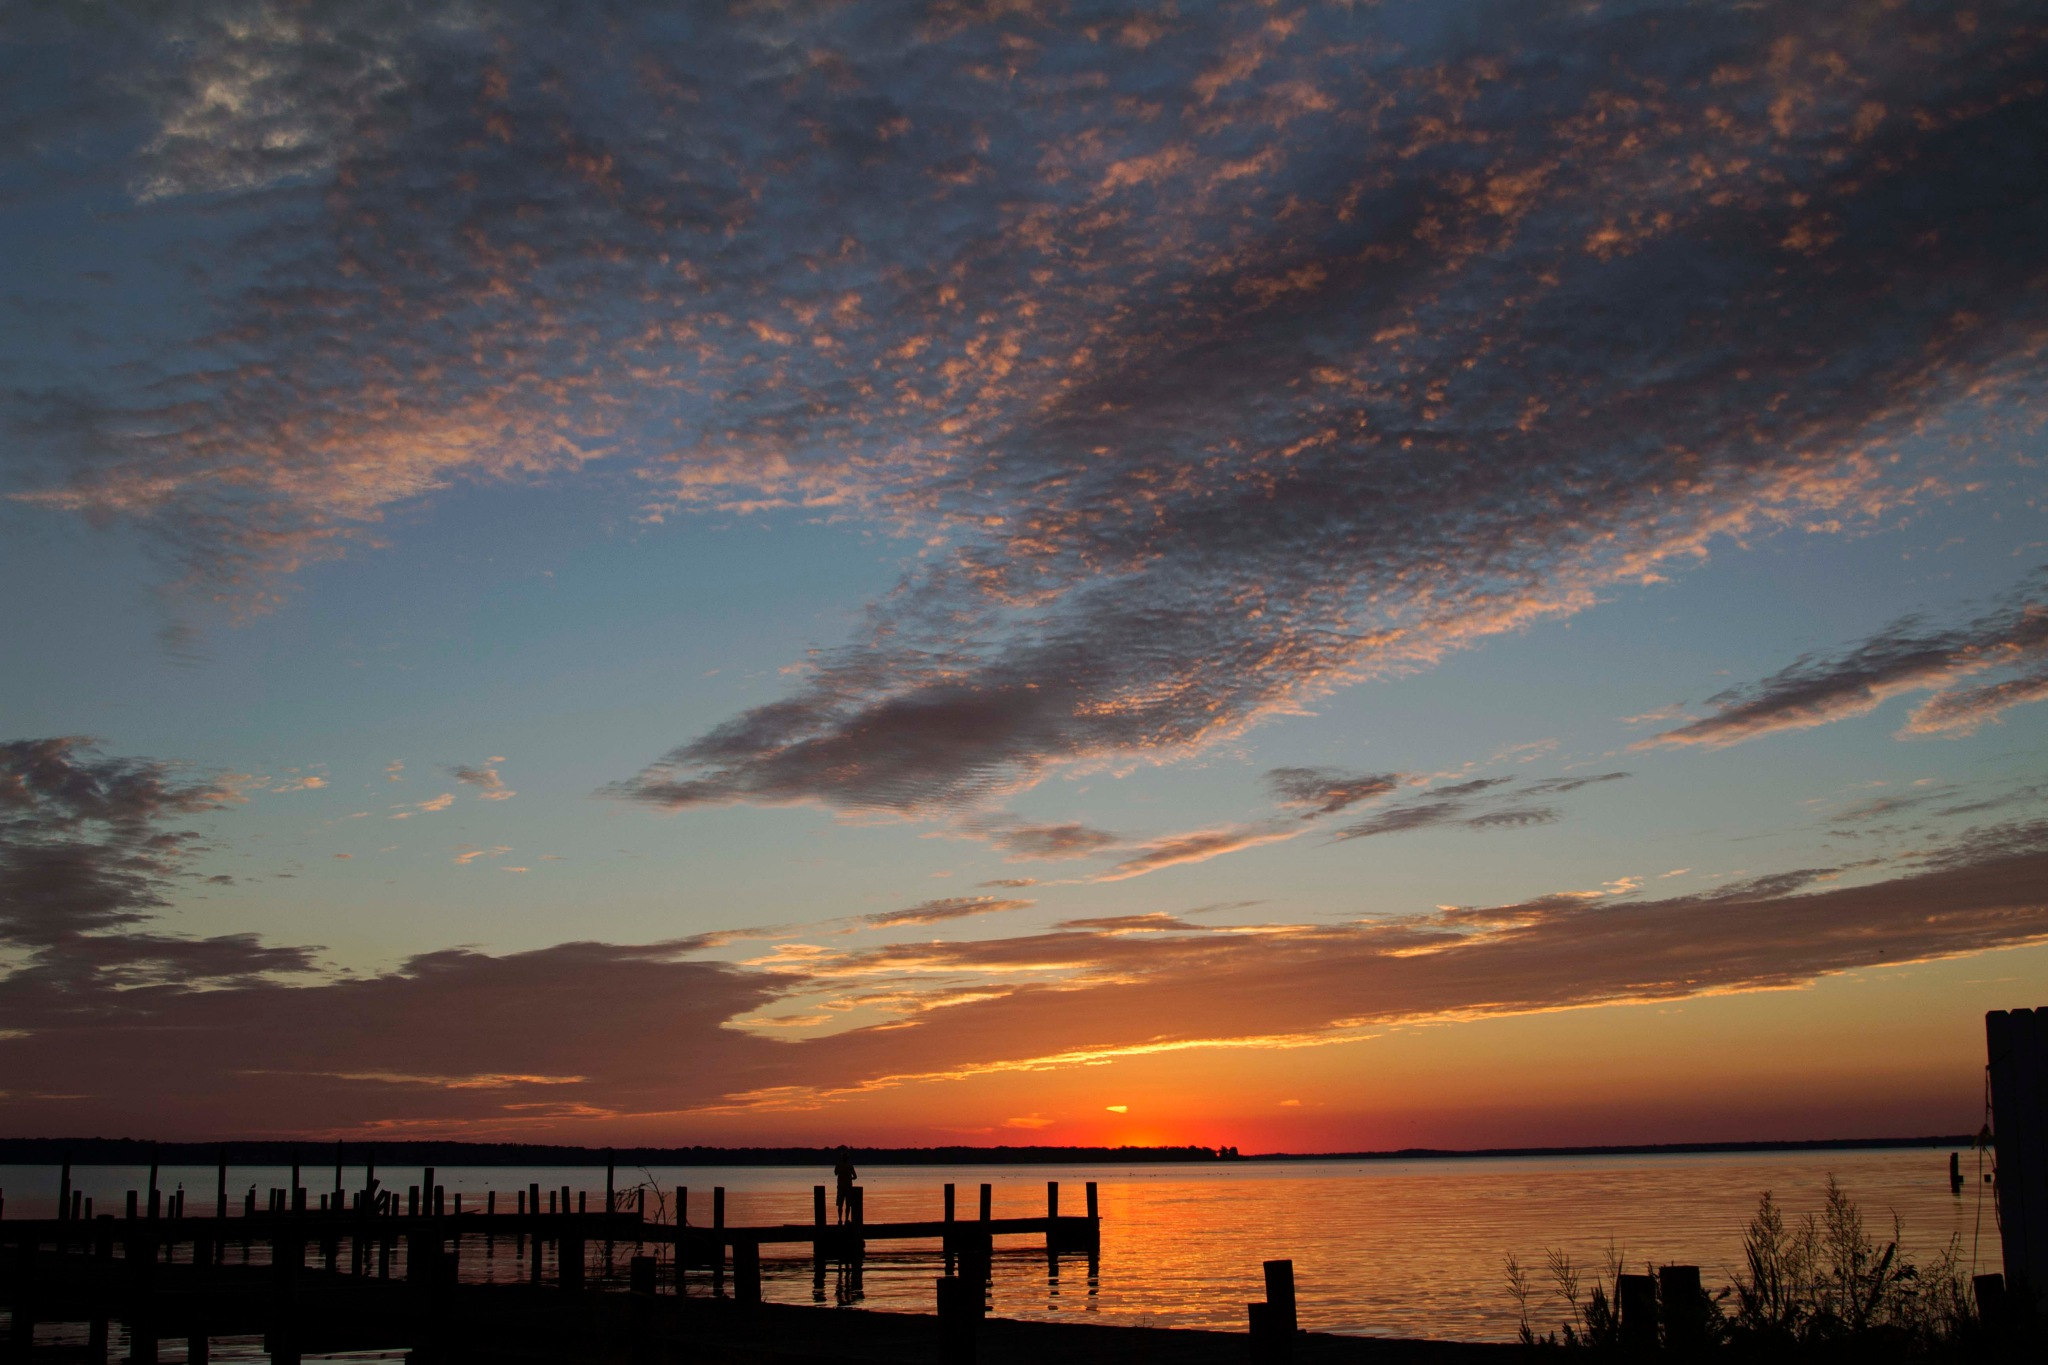 Autumn sunset #2 by Mary Carter